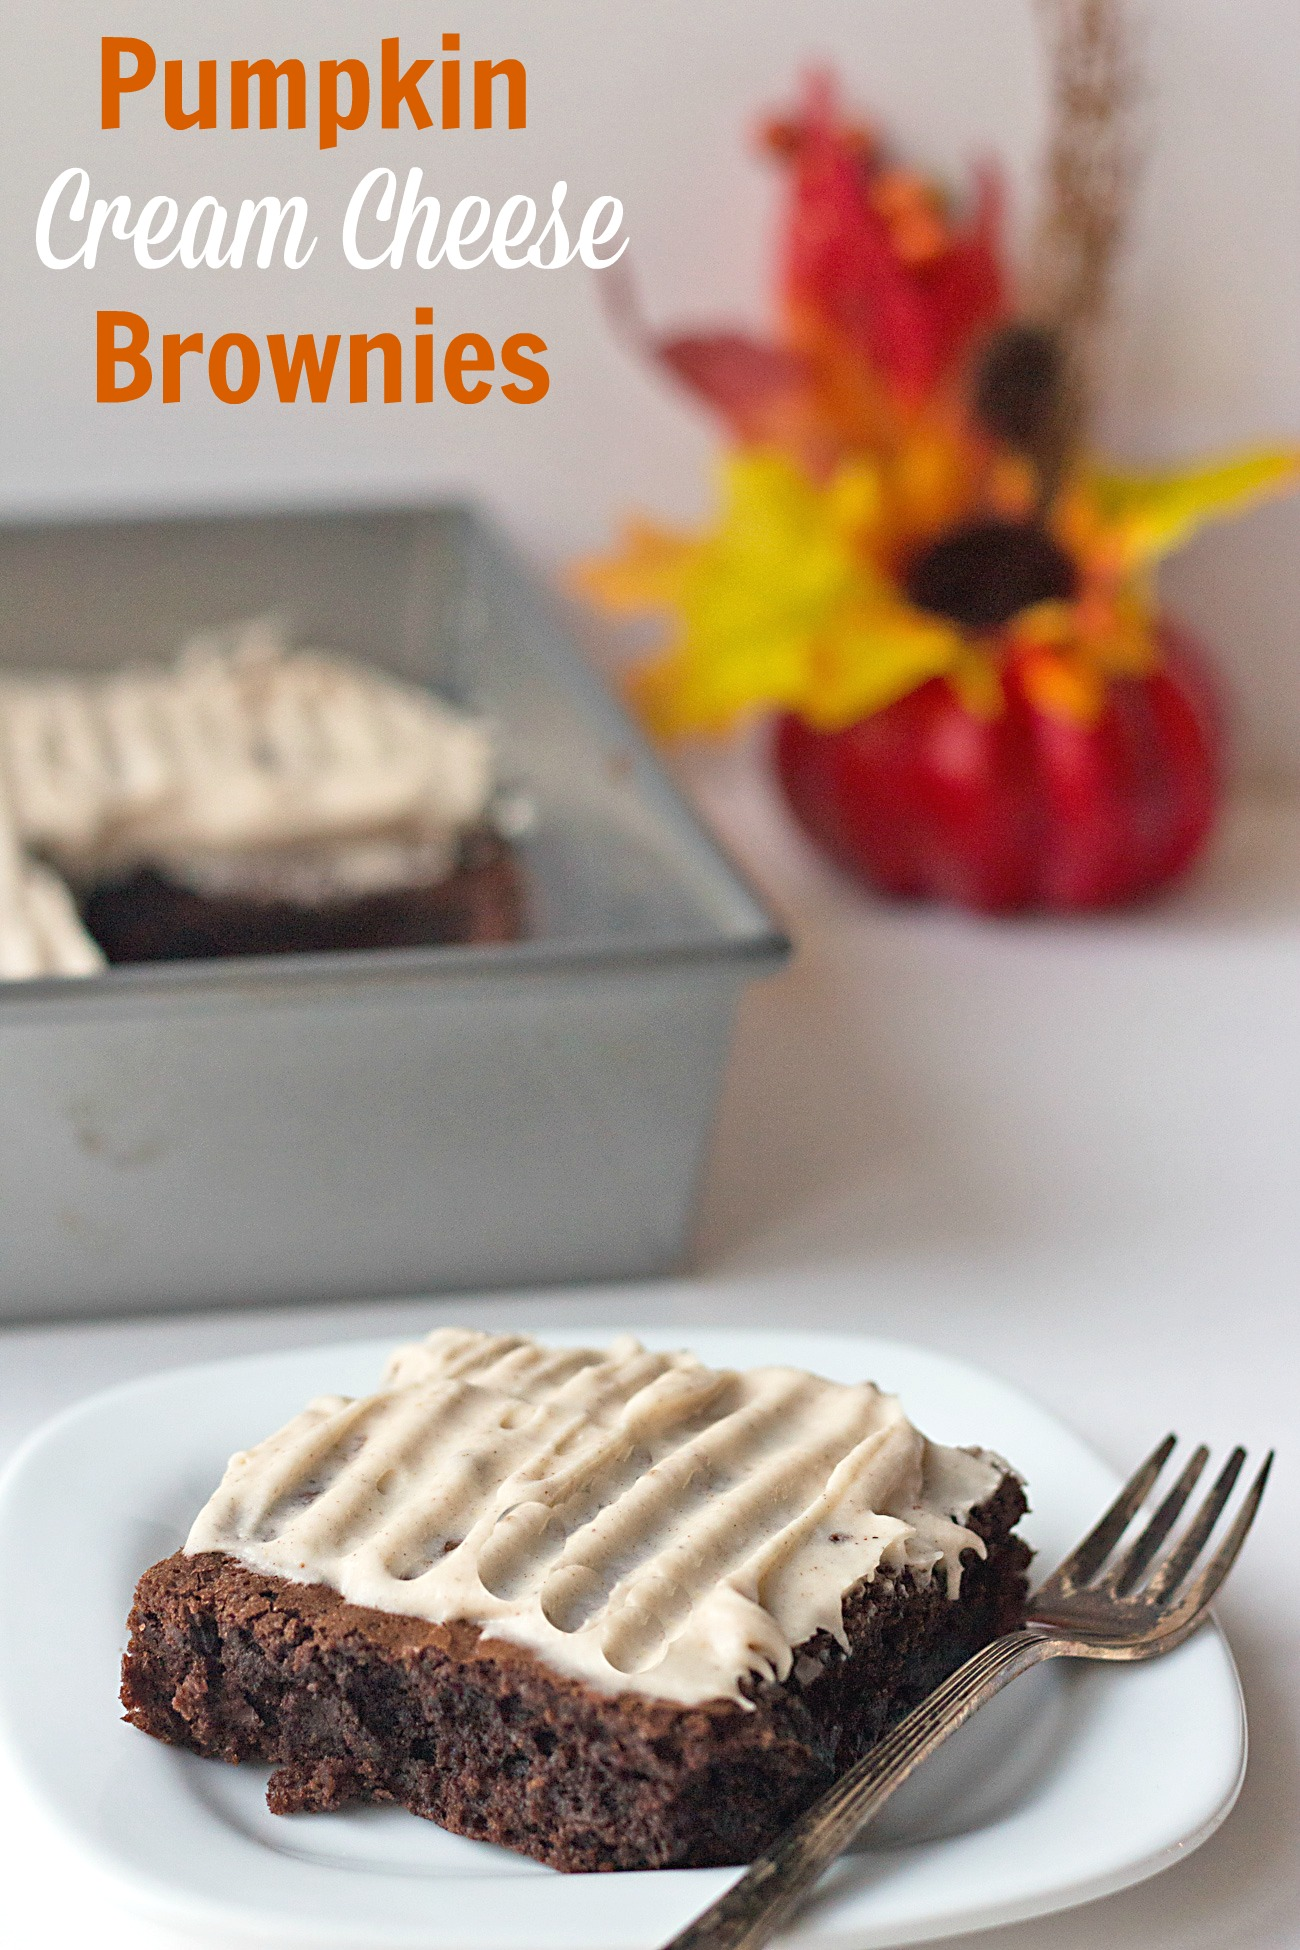 Pumpkin Cream Cheese Brownies Recipe- from ItsYummi.com